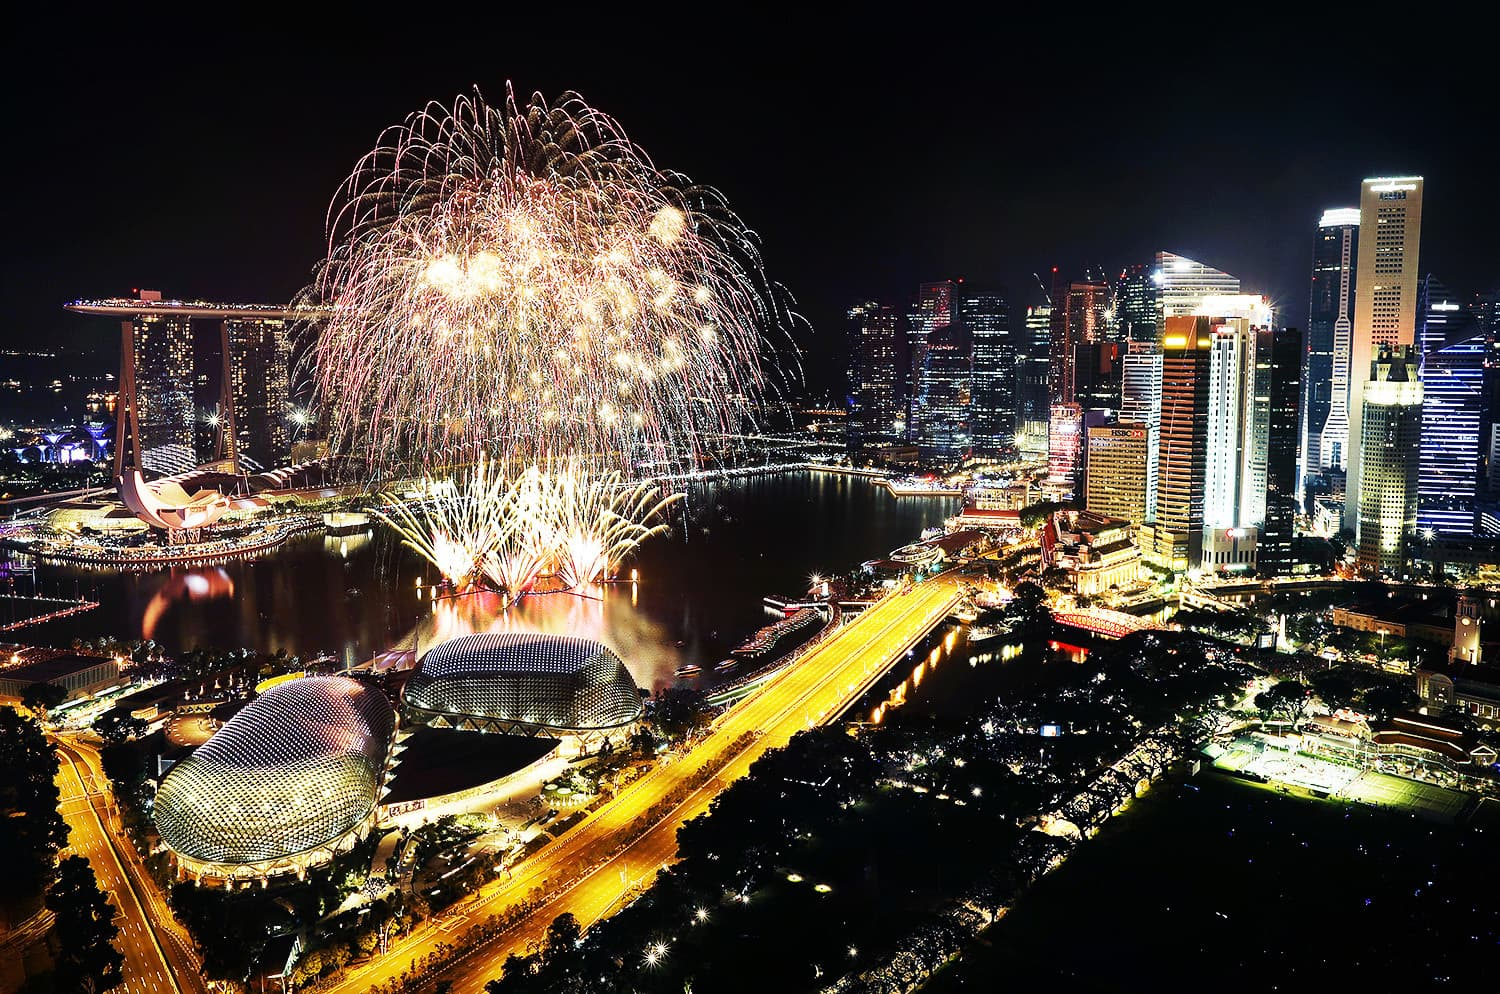 Fireworks explode above Singapore's financial district at the stroke of midnight to mark the New Year's celebrations.—AP